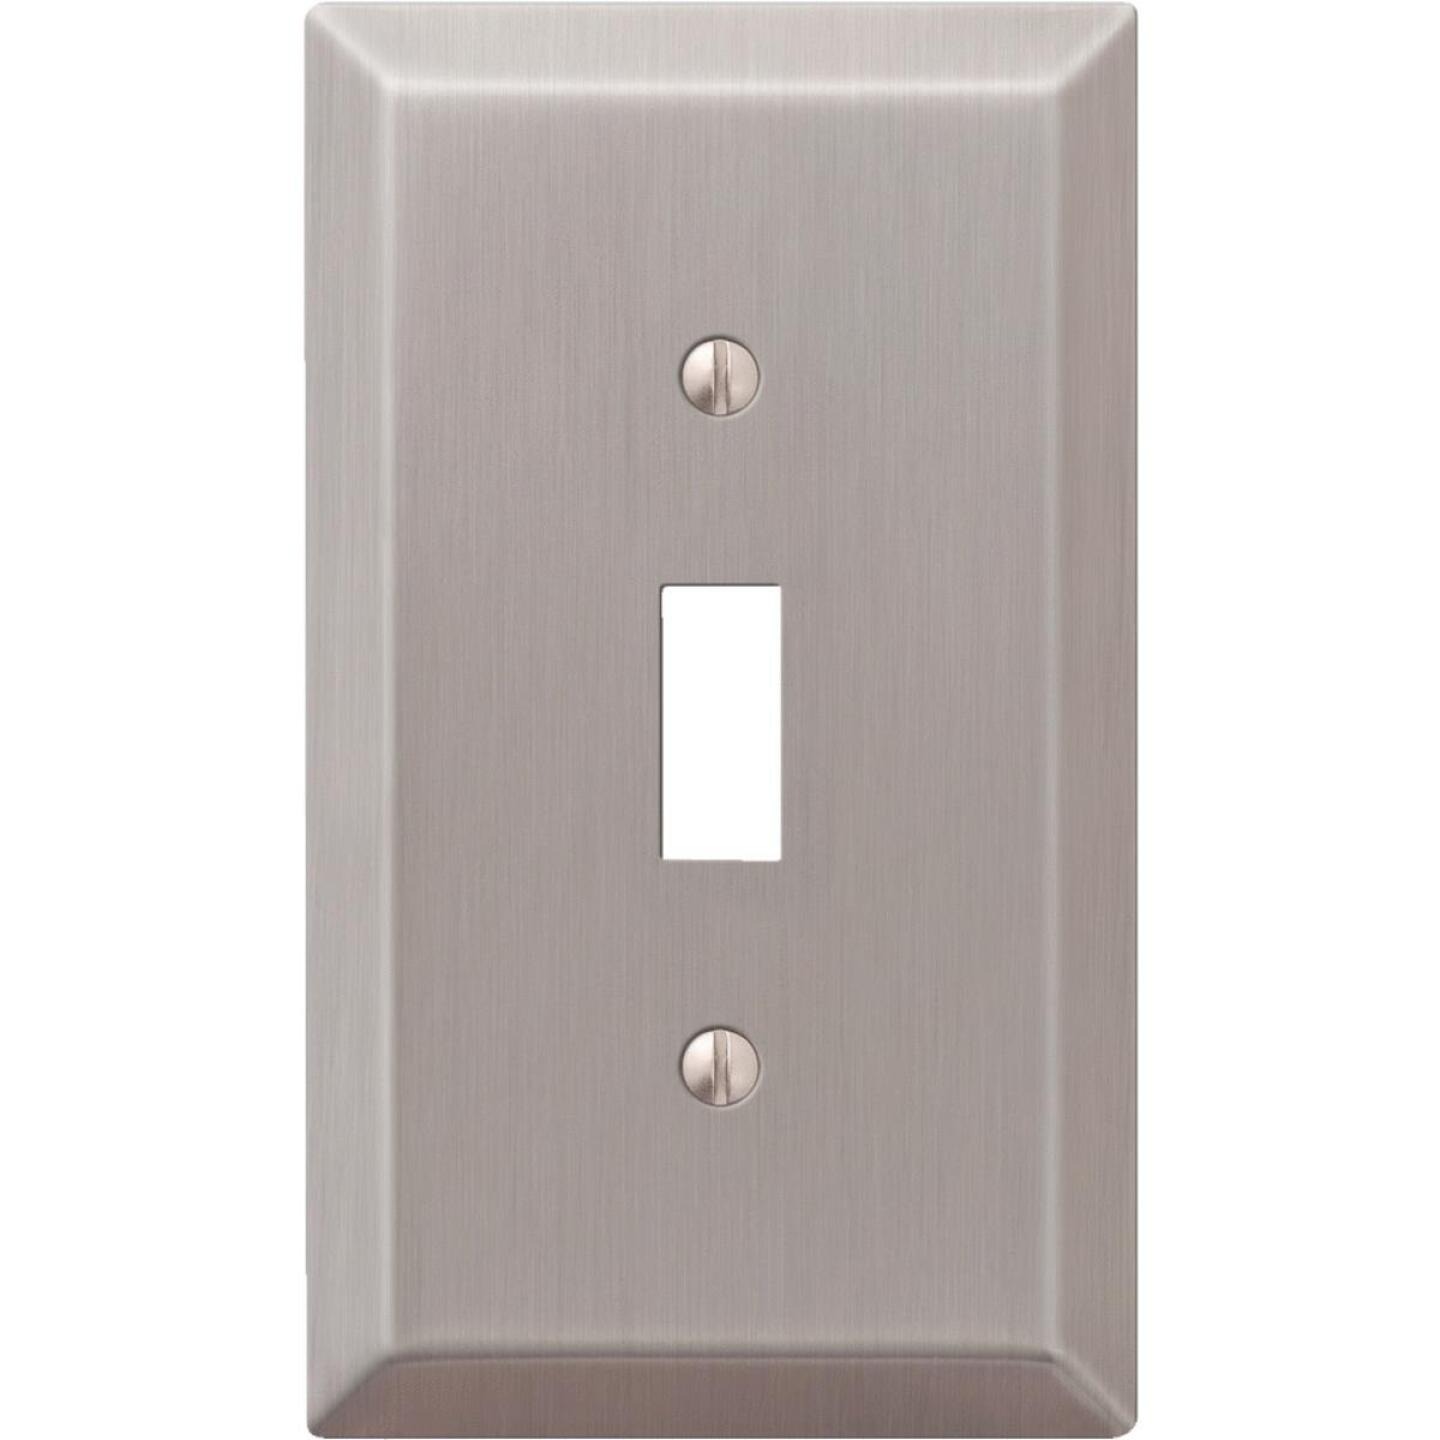 Amerelle 1-Gang Stamped Steel Toggle Switch Wall Plate, Brushed Nickel Image 1